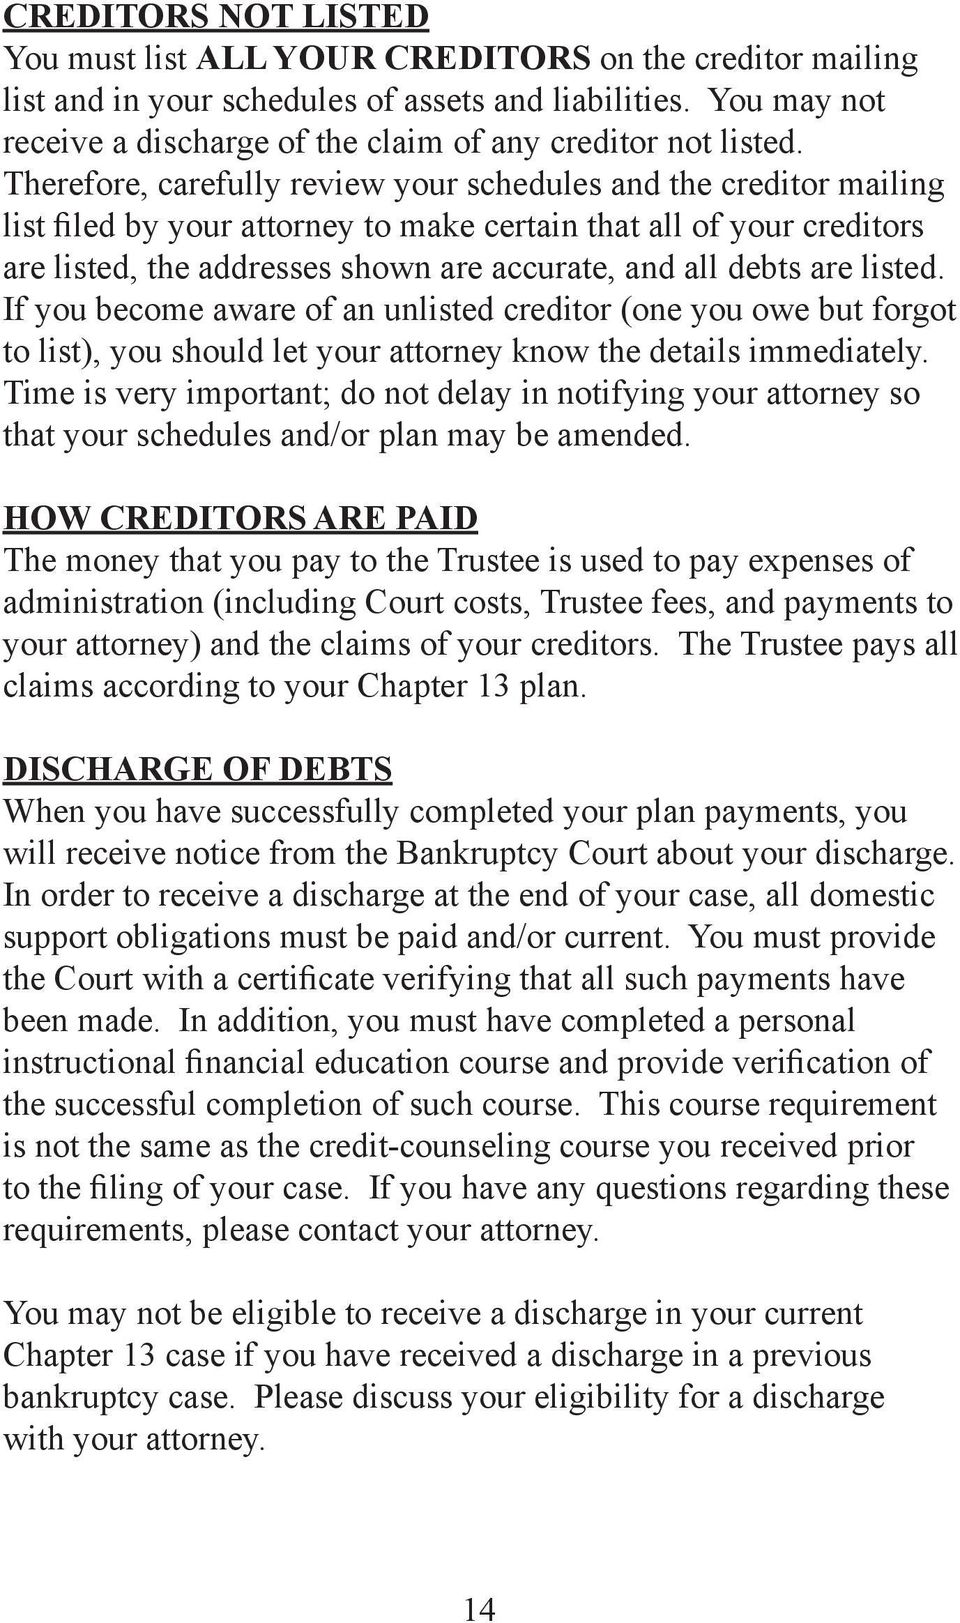 Therefore, carefully review your schedules and the creditor mailing list filed by your attorney to make certain that all of your creditors are listed, the addresses shown are accurate, and all debts